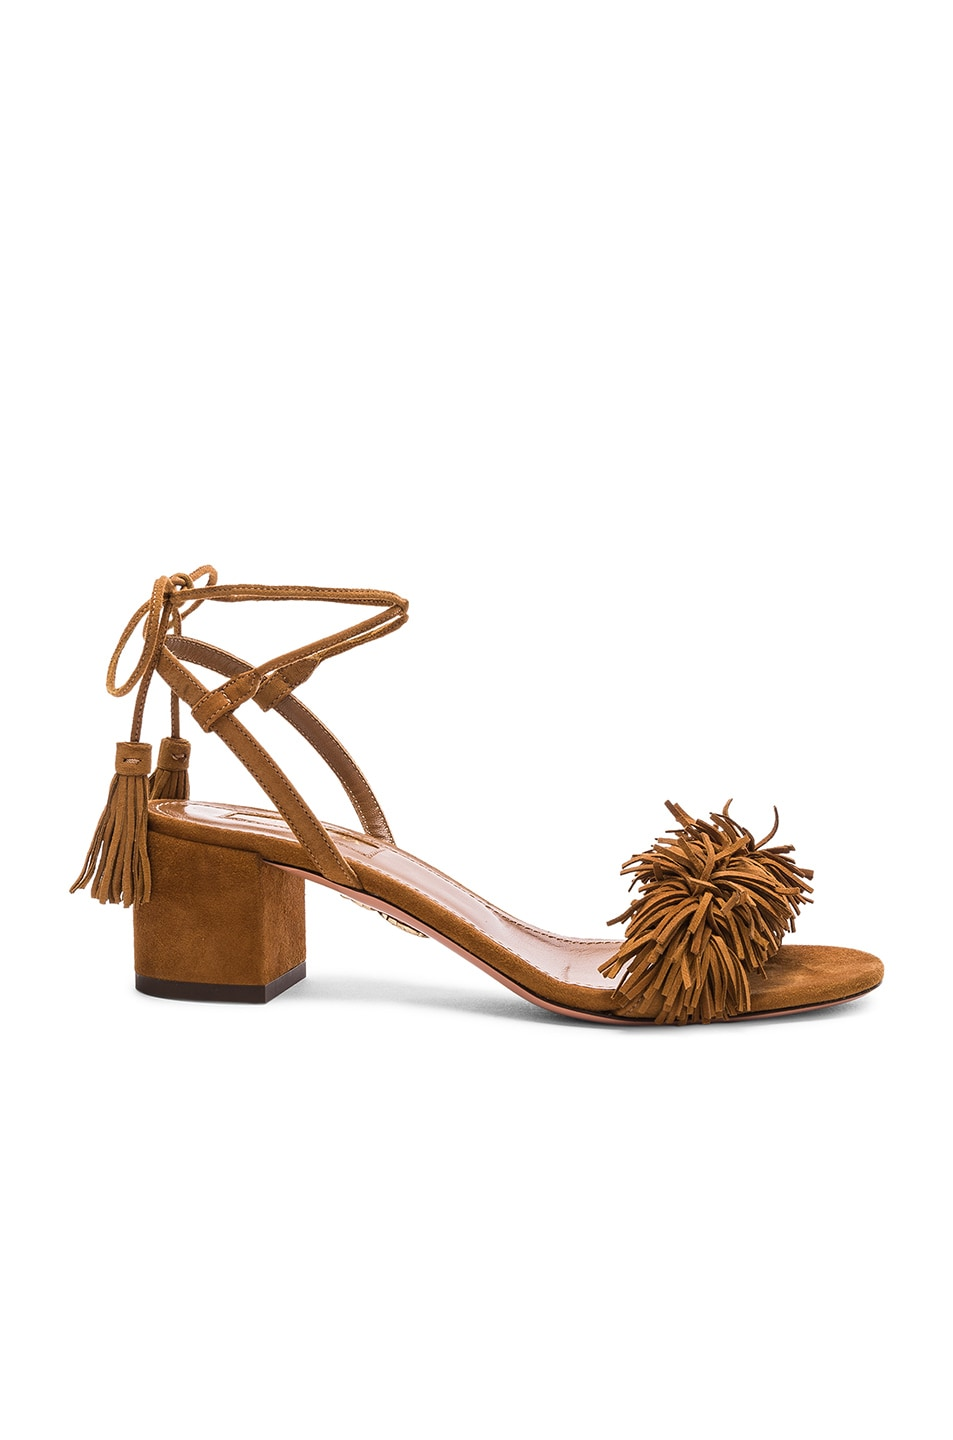 Image 1 of Aquazzura Suede Wild Thing Sandals in Cognac